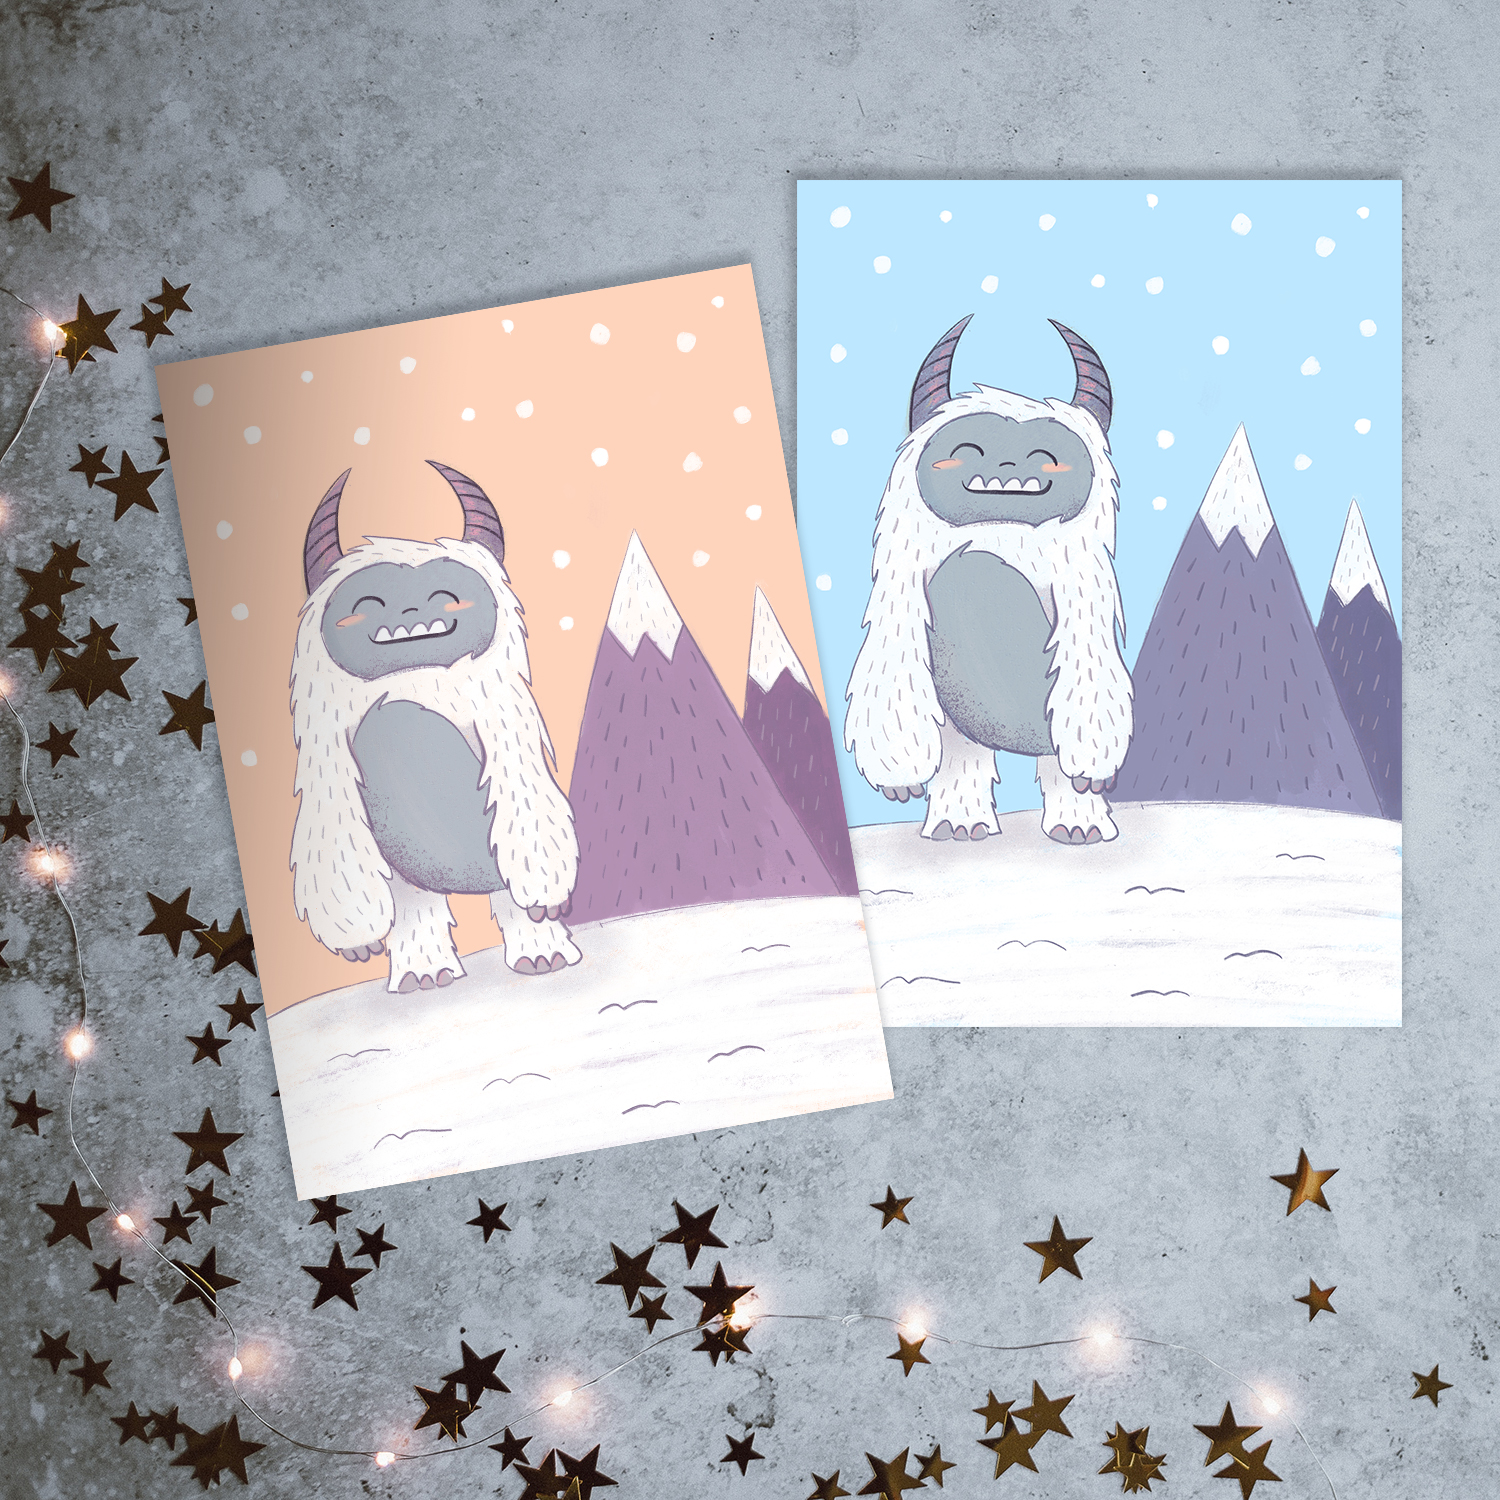 Adorable yeti sitting in the snow near the mountains - so cute!